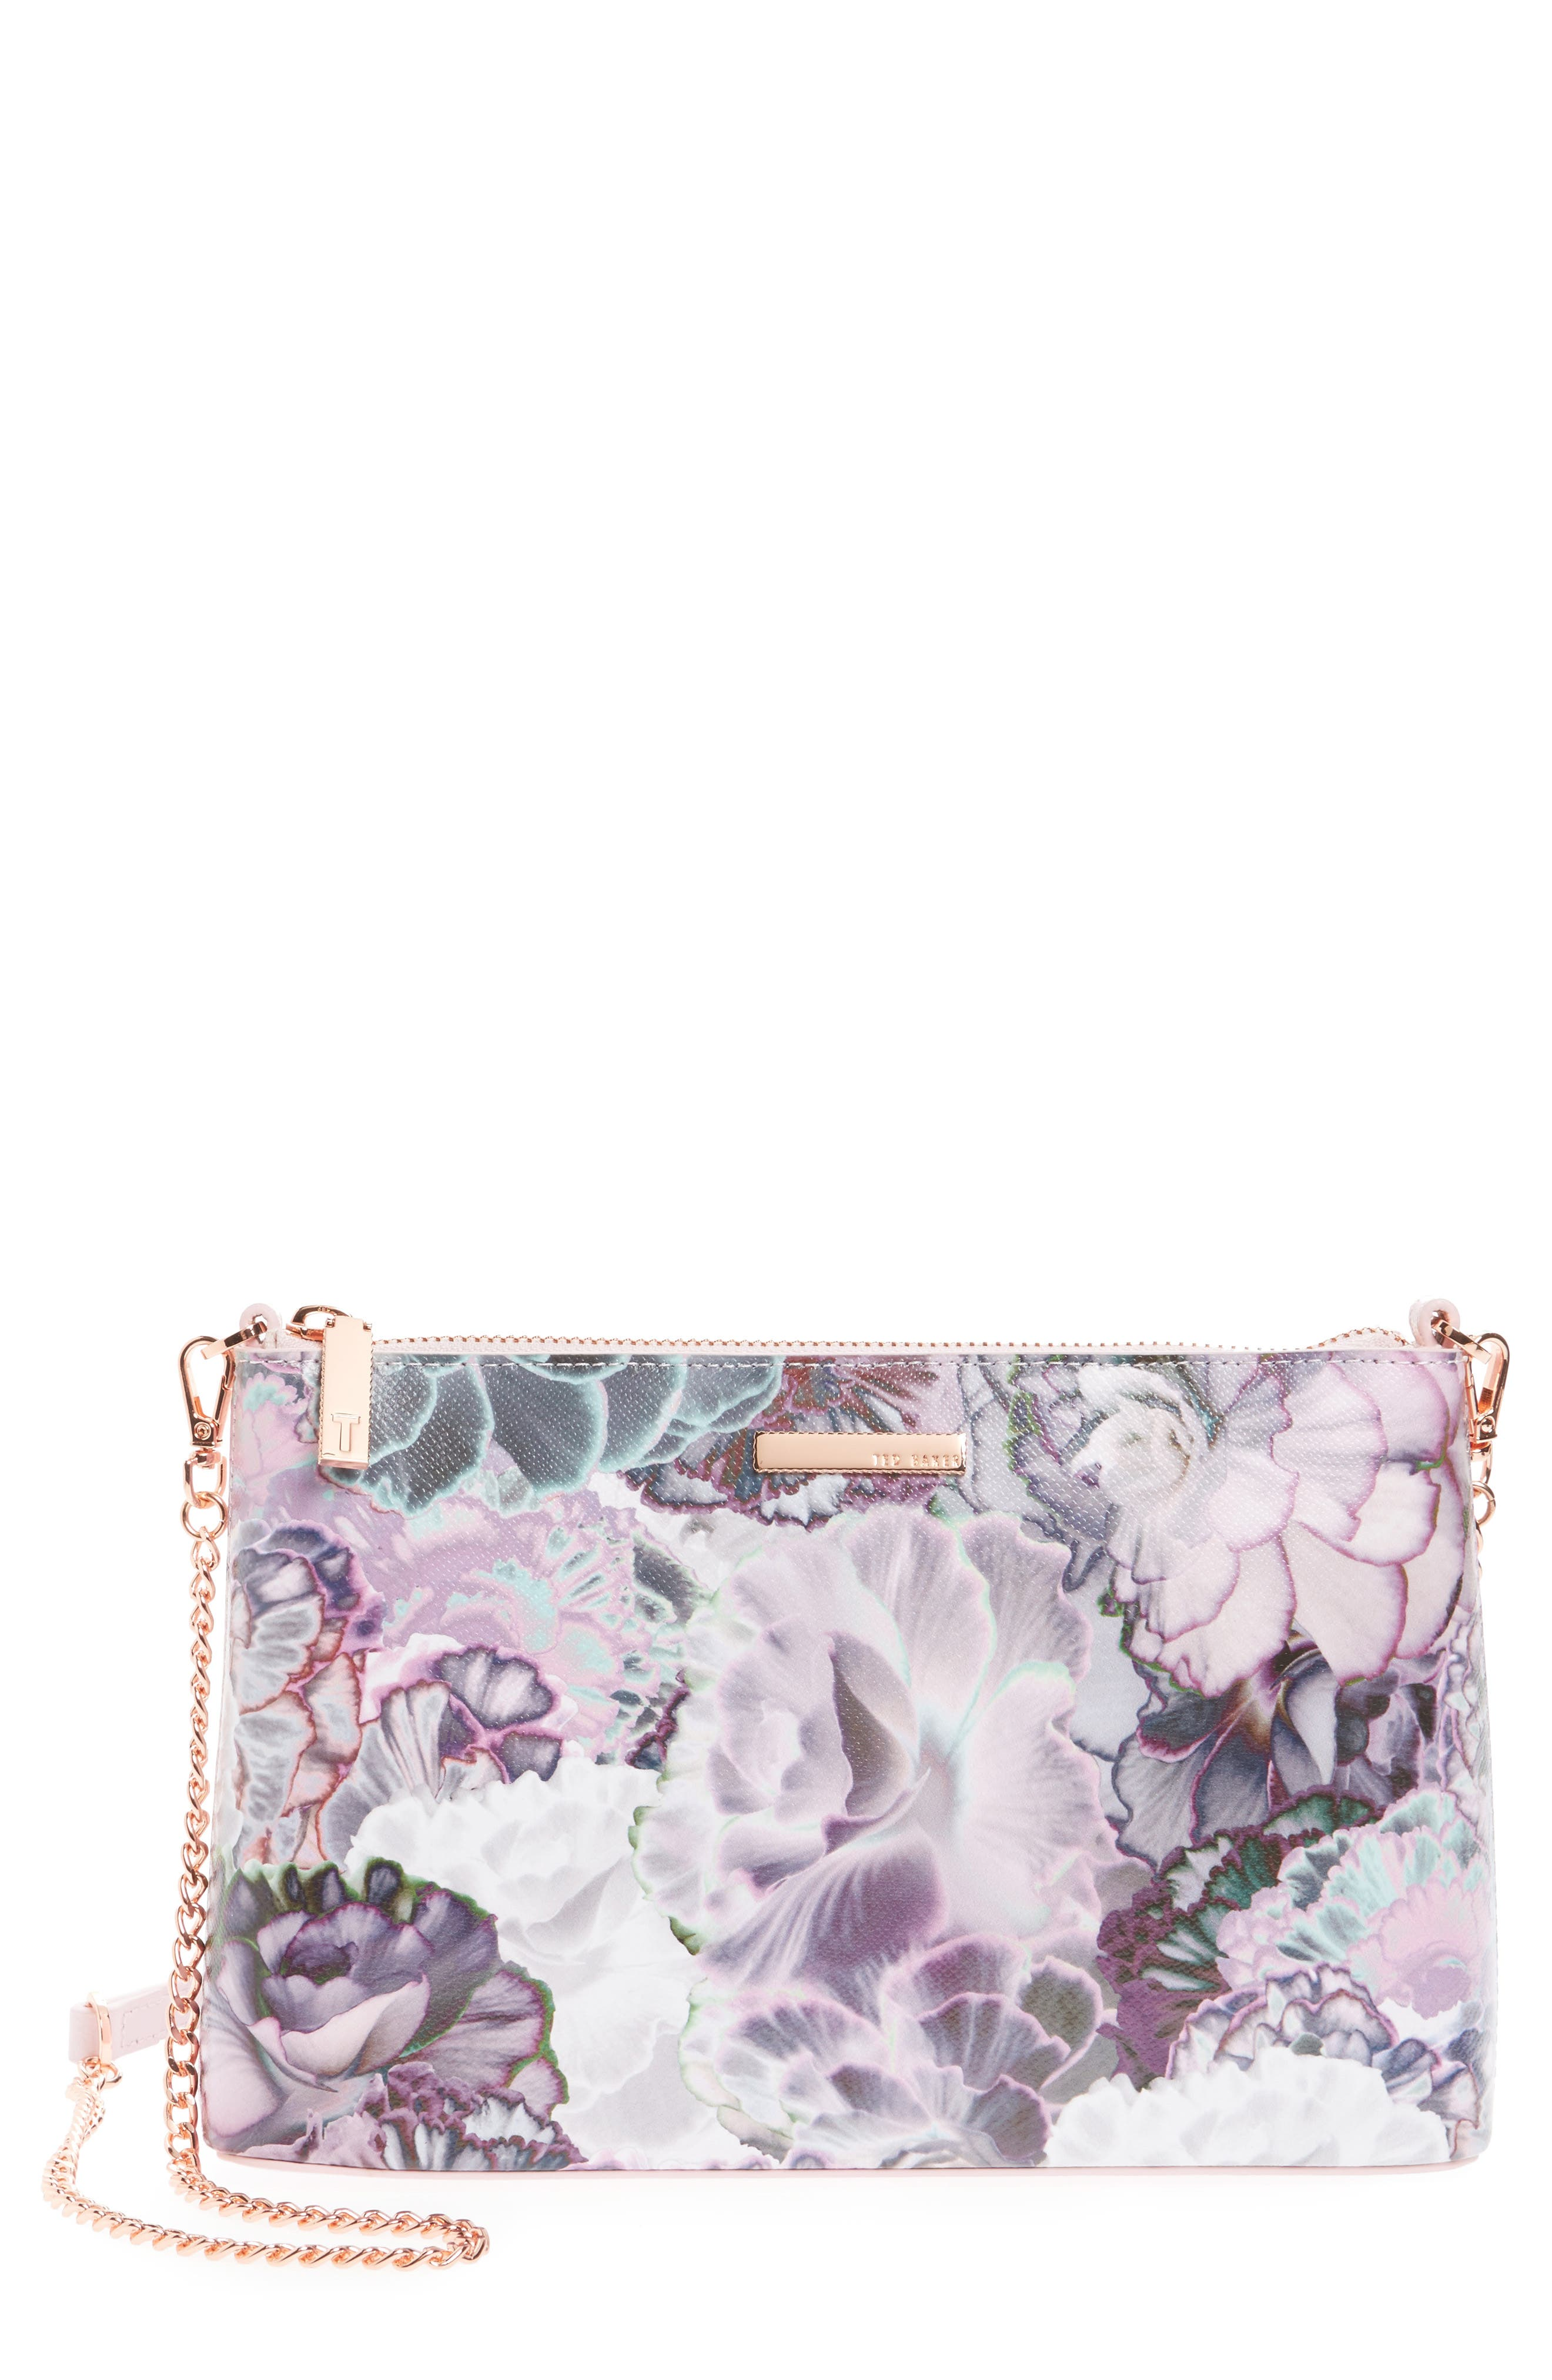 Illuminated Bloom Leather Crossbody Bag,                             Main thumbnail 1, color,